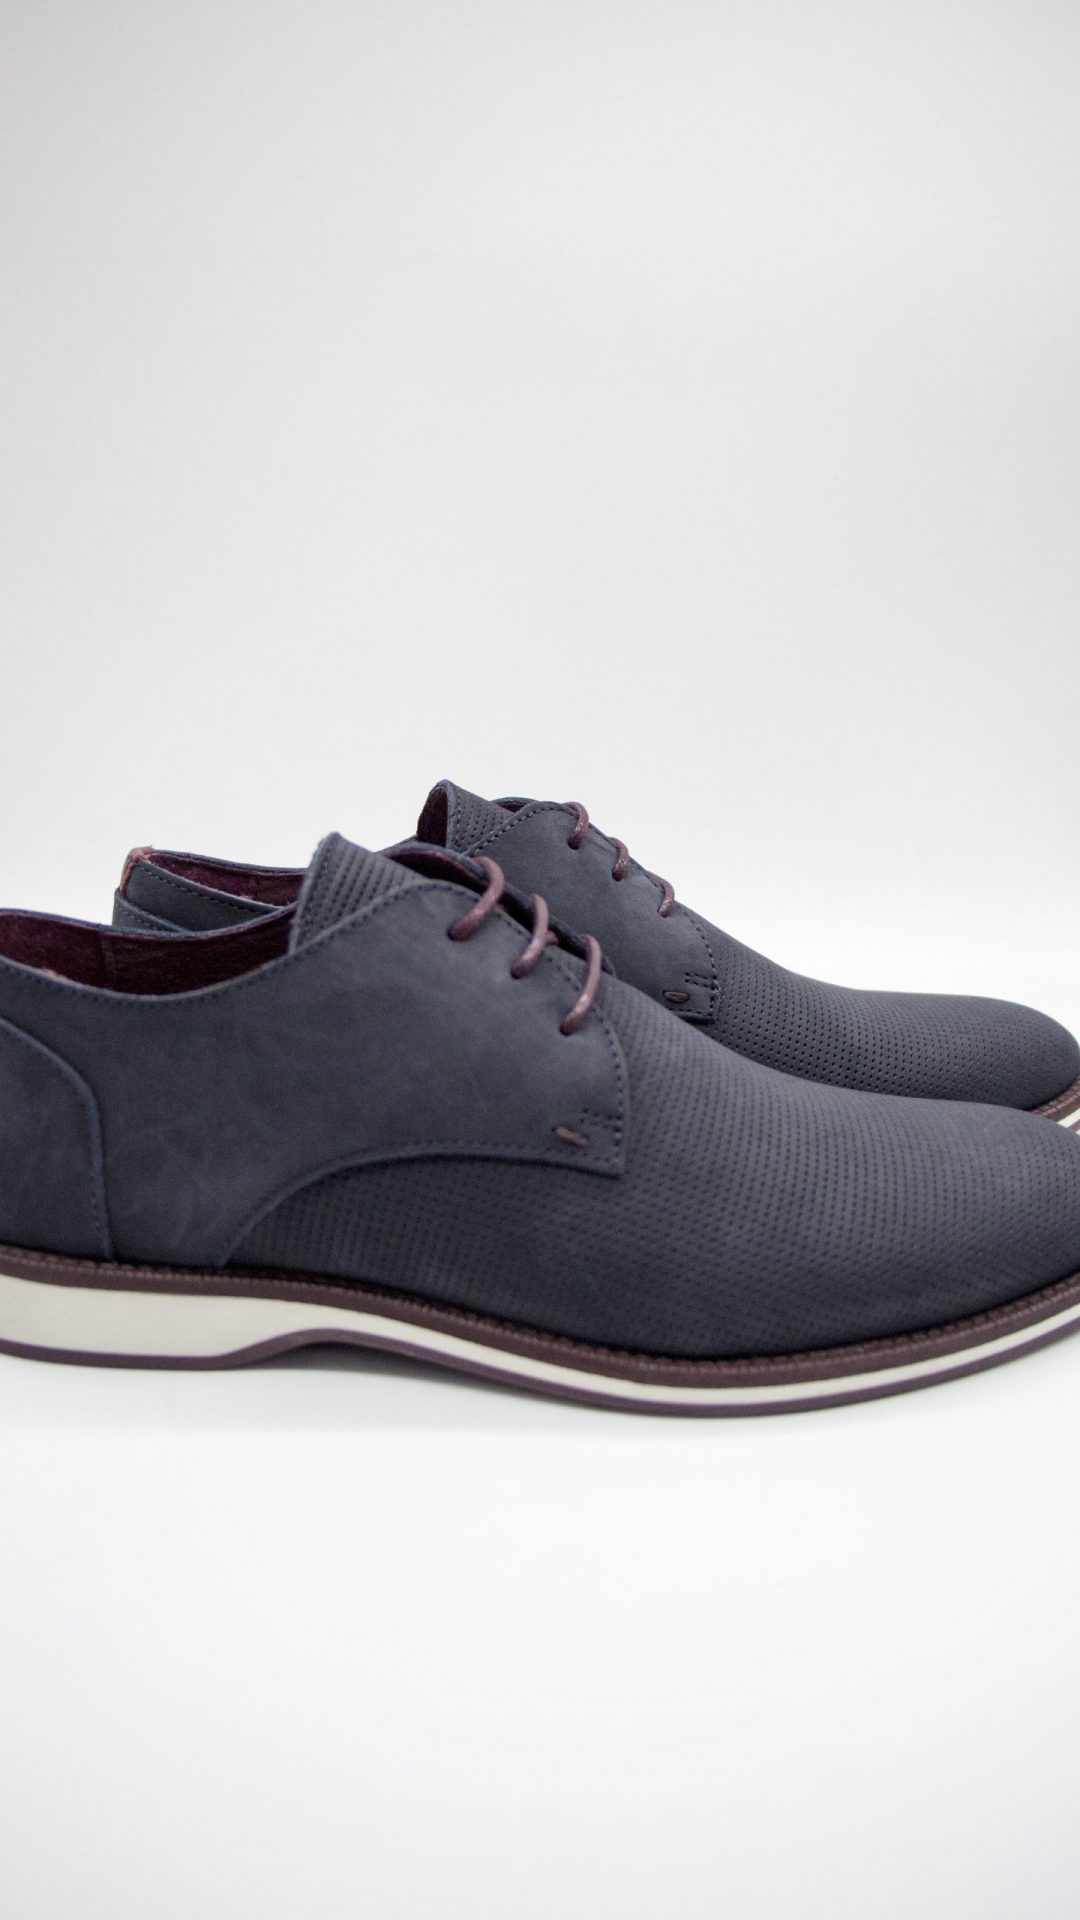 SHOES-FM-287-S20 (NAVY)